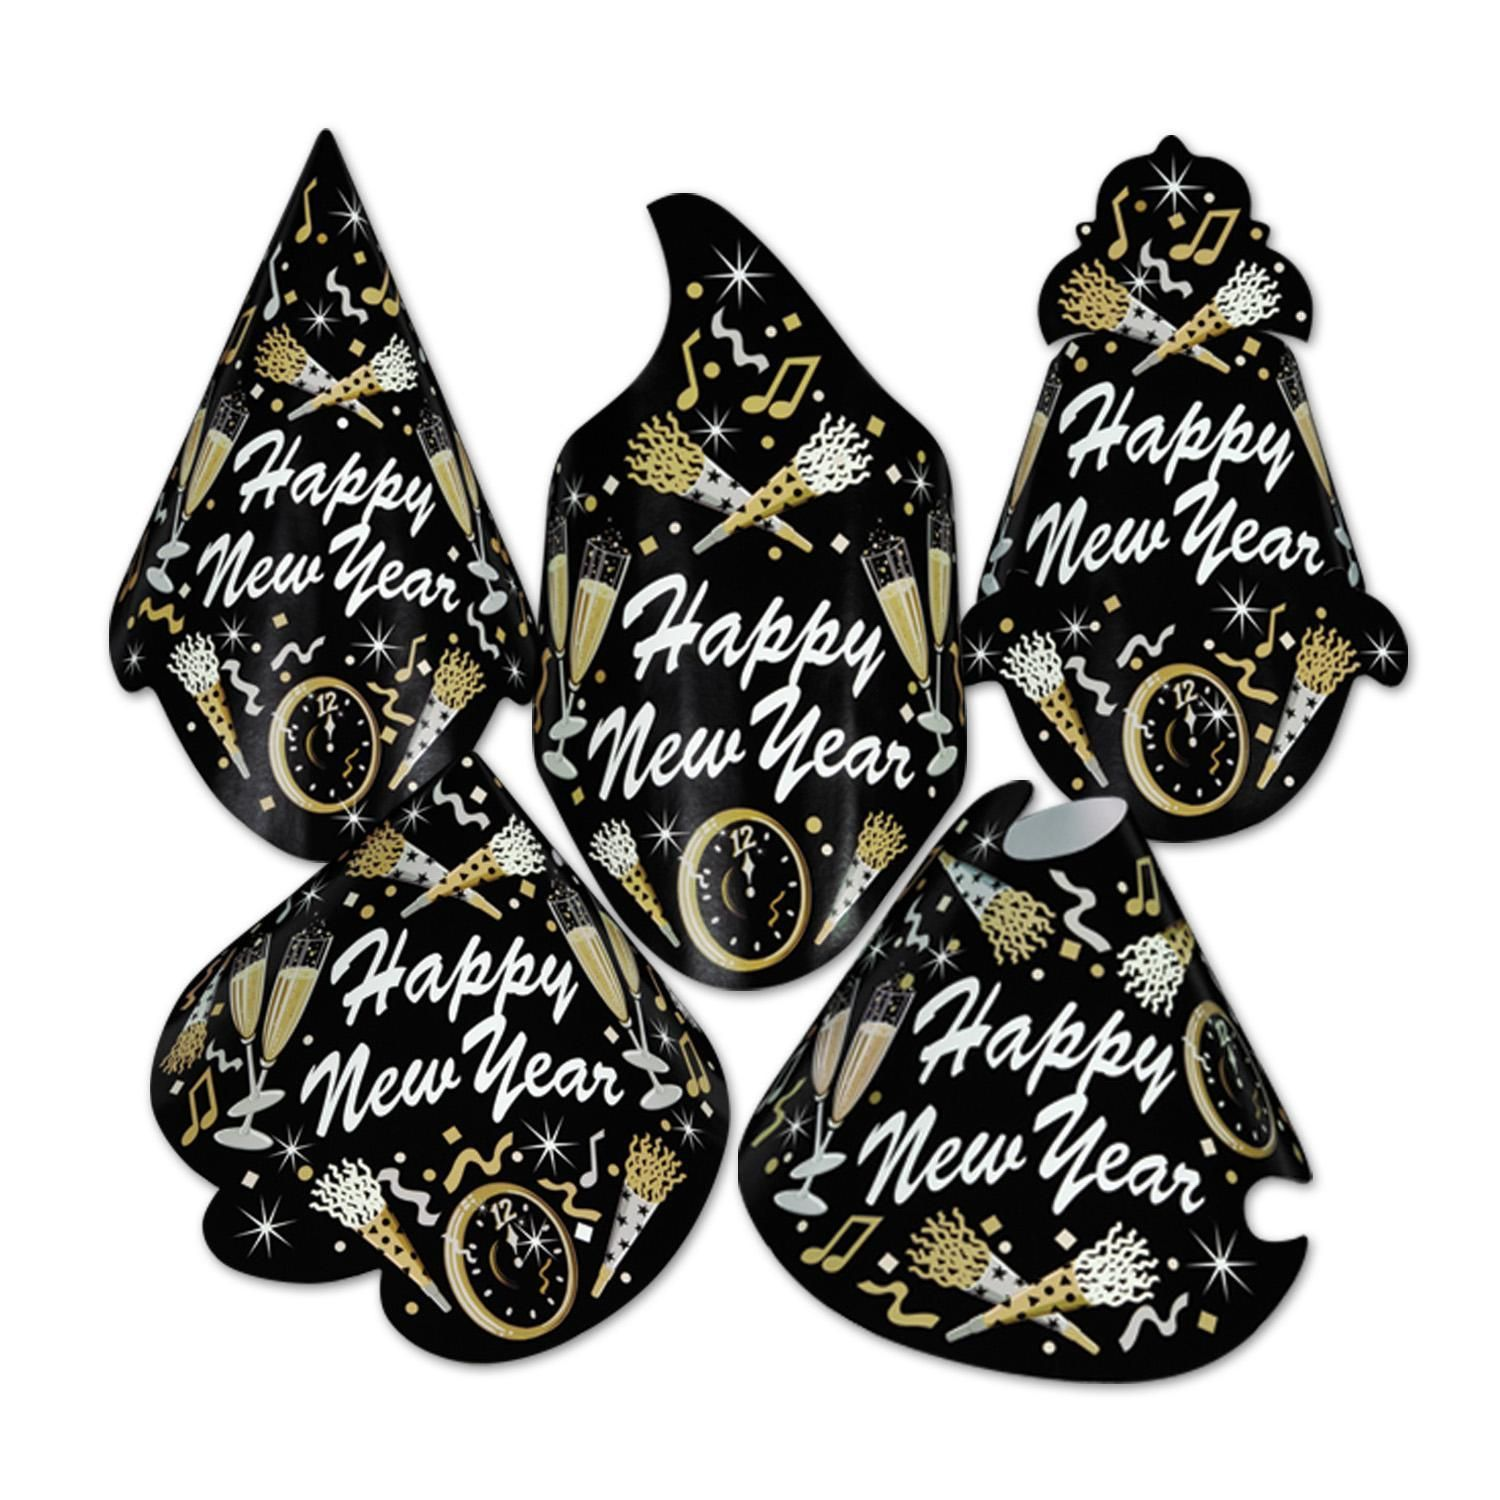 New Year Tymes Hat Assortment Beistle Party Supplies in